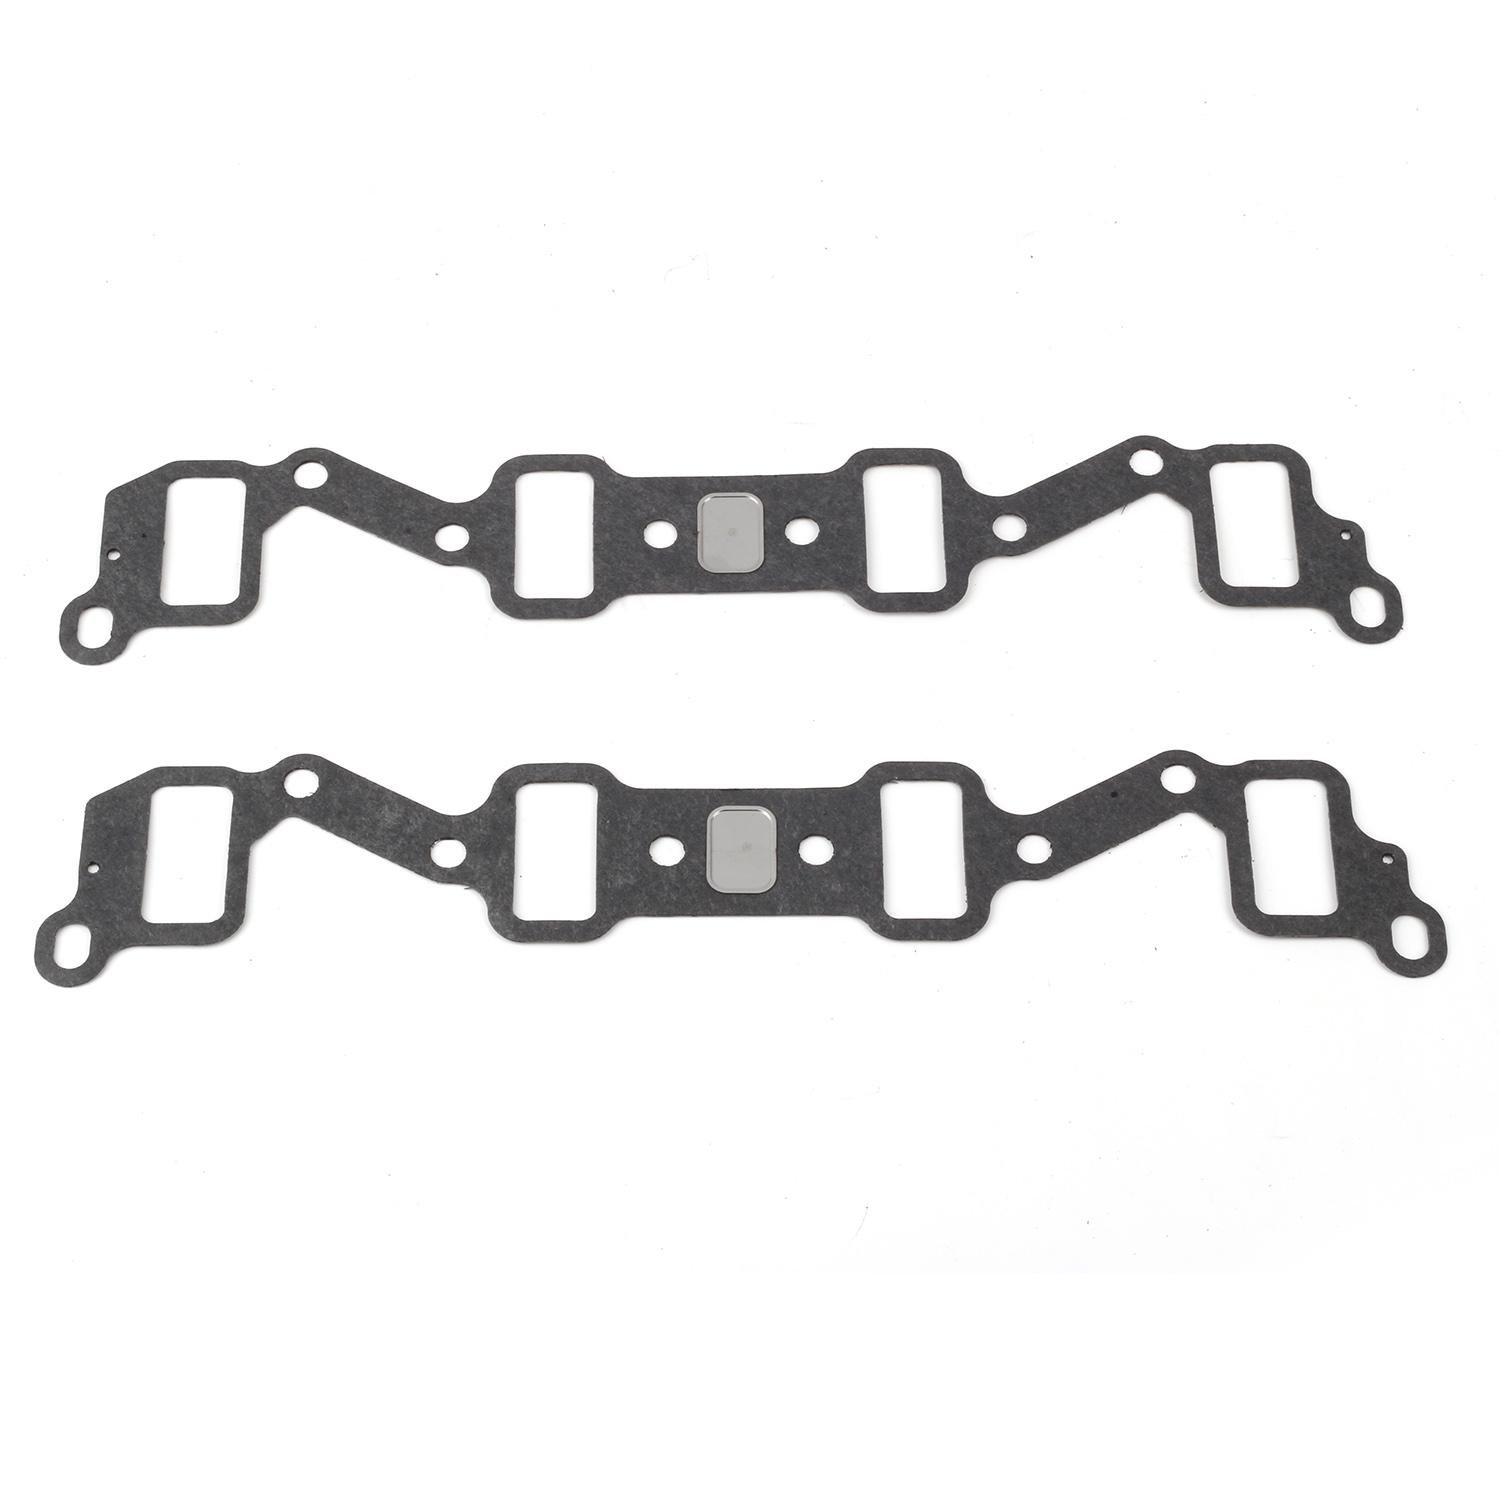 Amazon.com: Intake Manifold & Injection Pump Gaskets Fits For GM Chevy GMC  Diesel 6.2L/6.5L V8 OHV: Automotive